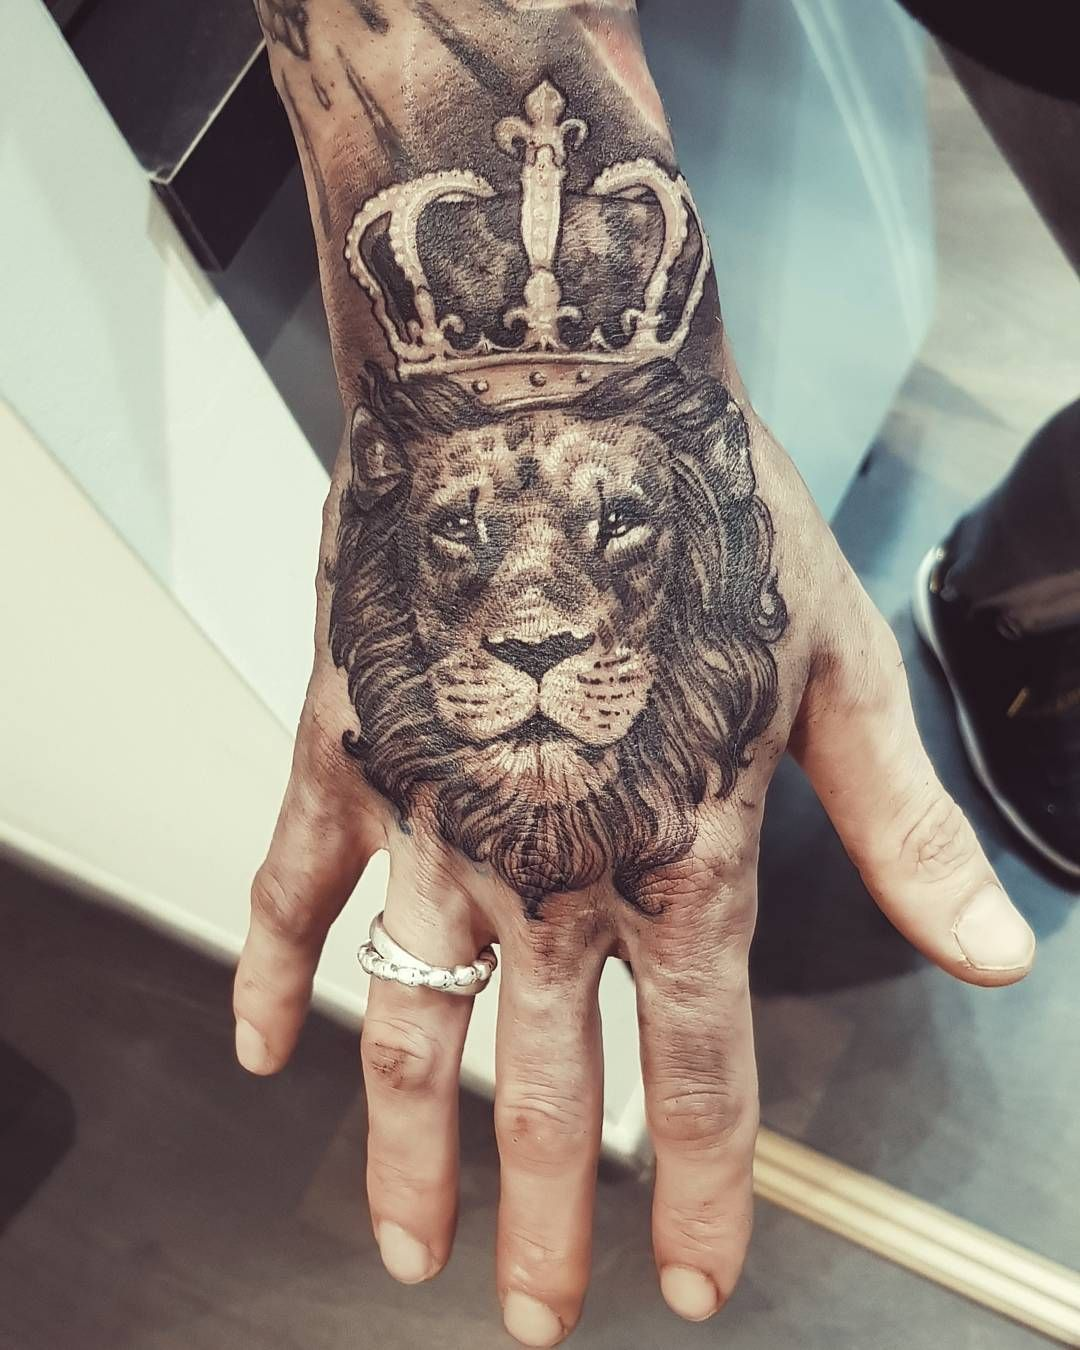 Lion Tattoo Tattoos Ink Inked Tattooed Tattoist Art Design Instaart Instagood Handtattoo Lion Hand Tattoo Hand Tattoos Hand Tattoo Images